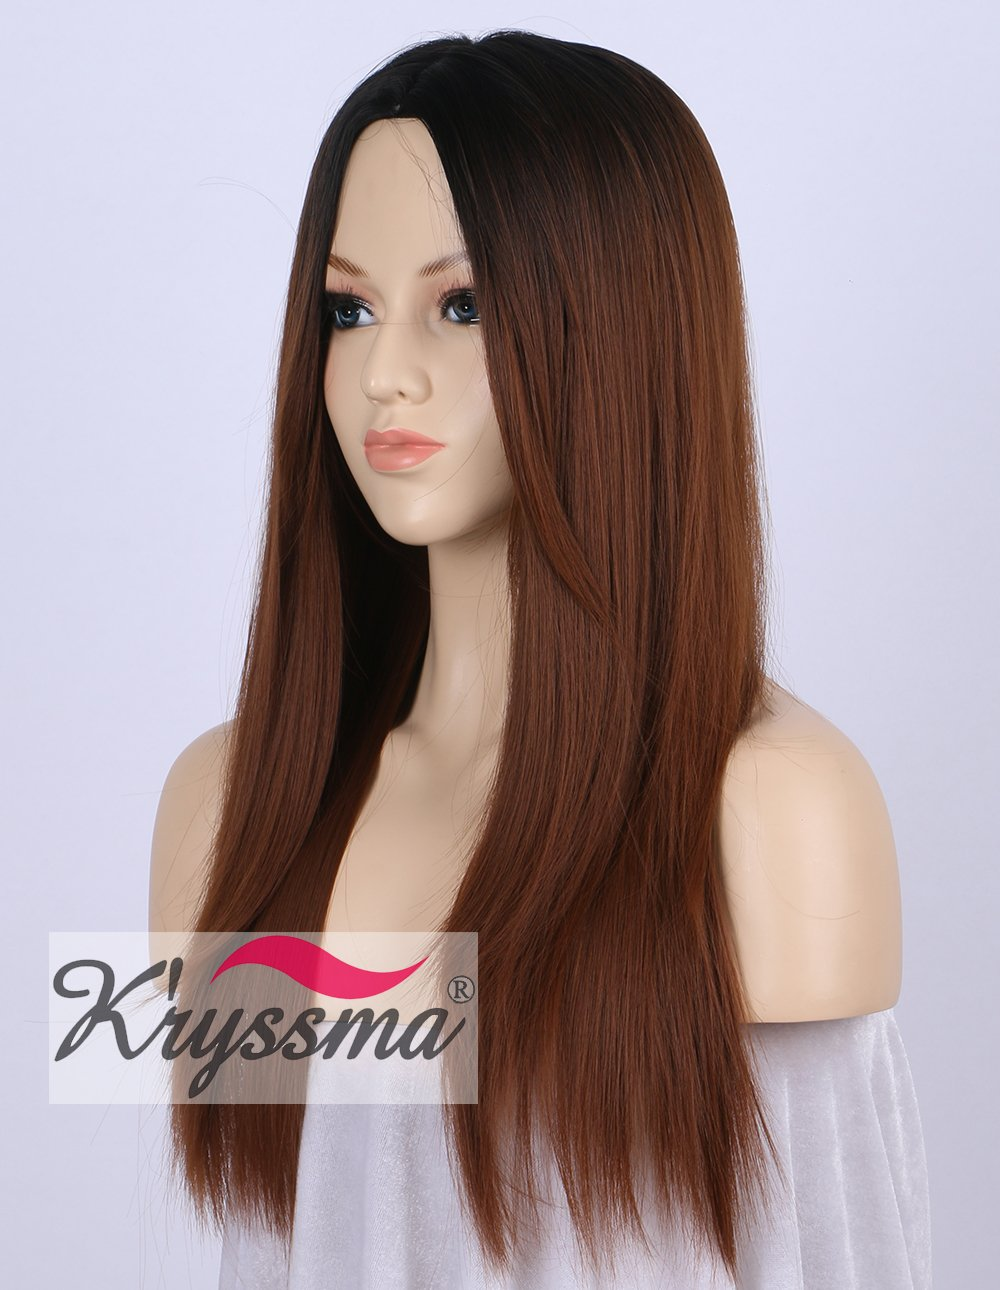 K Ryssma Ombre Synthetic Wigs Brown Natural Looking 2 Tone Black Roots Machine Made Middle Part